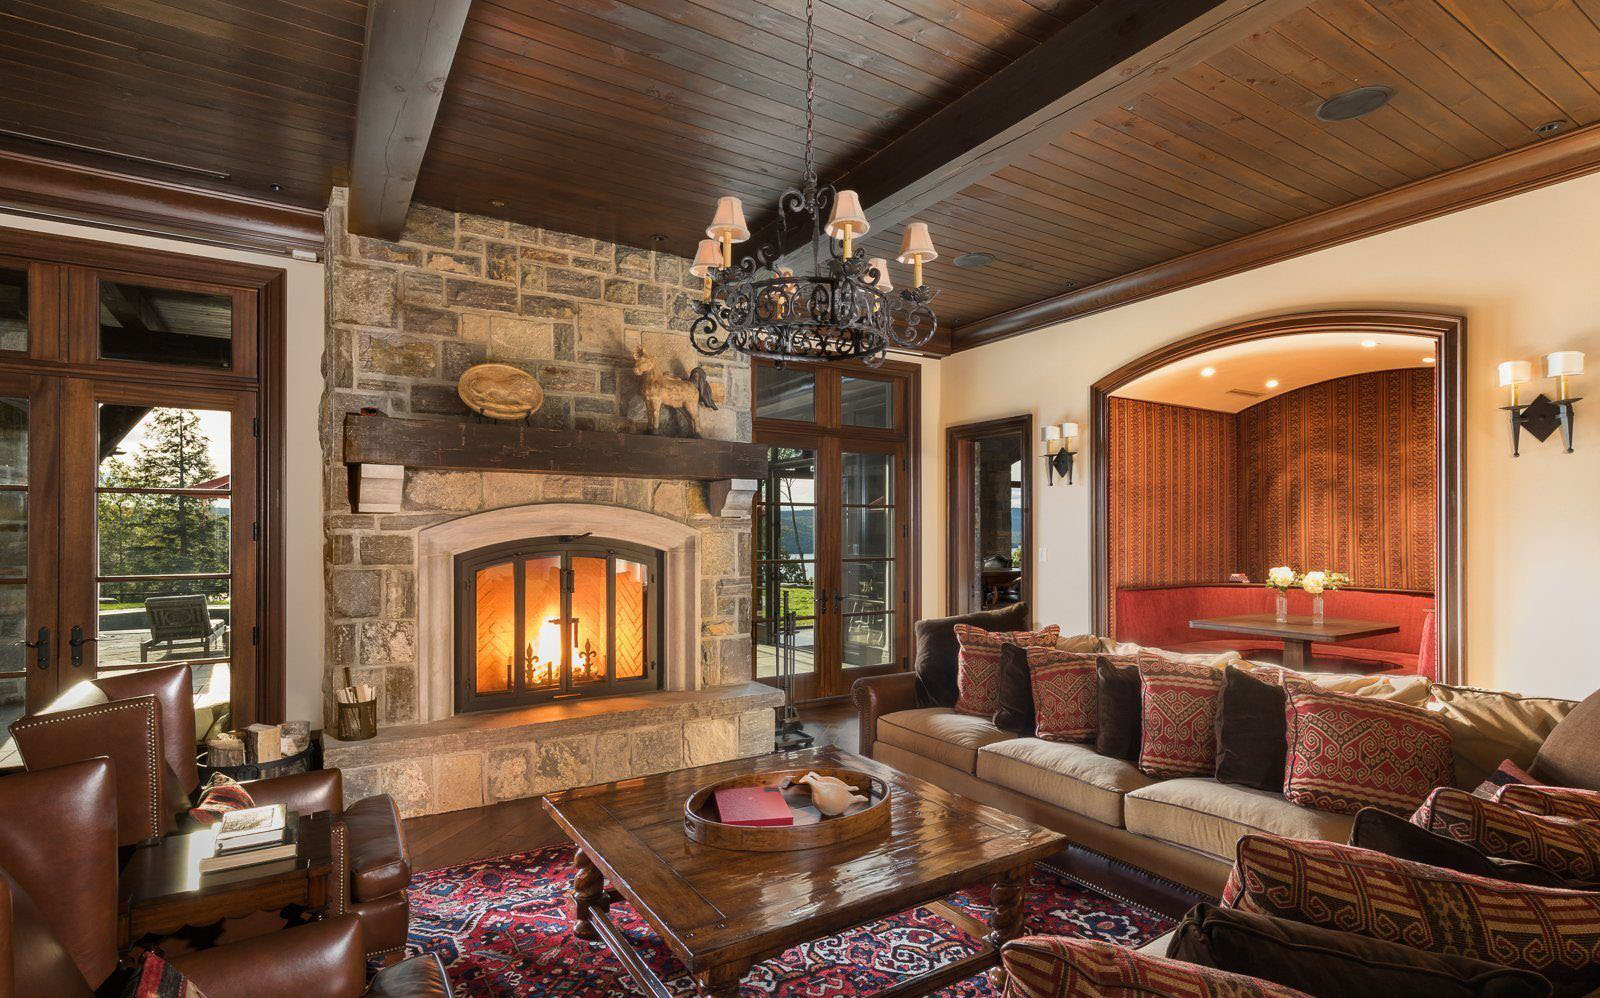 Beautiful living room with a rustic design featuring a real stone fireplace with raised hearth and wood shelf, rich wood trim and exposed ceiling beams.